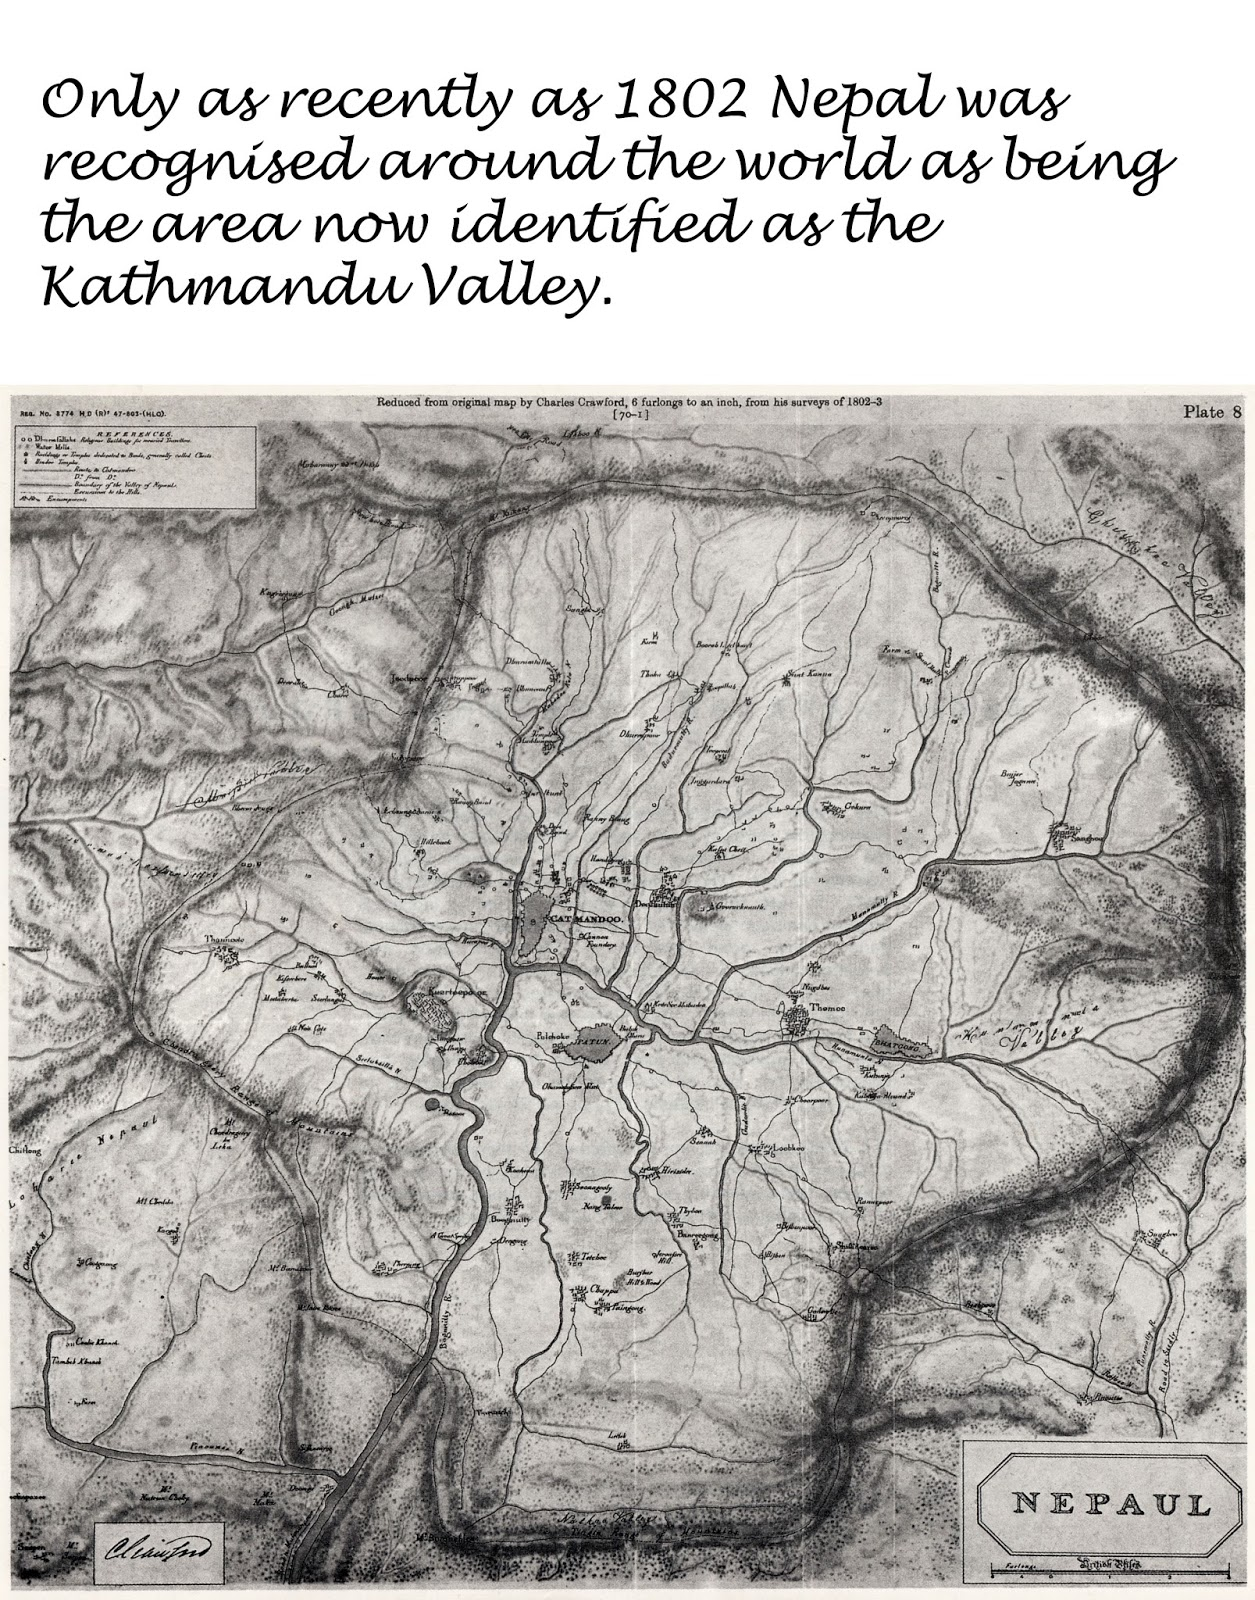 nepal as it was perceived pre 1700 the area on the kathmandu valley and its kingdom